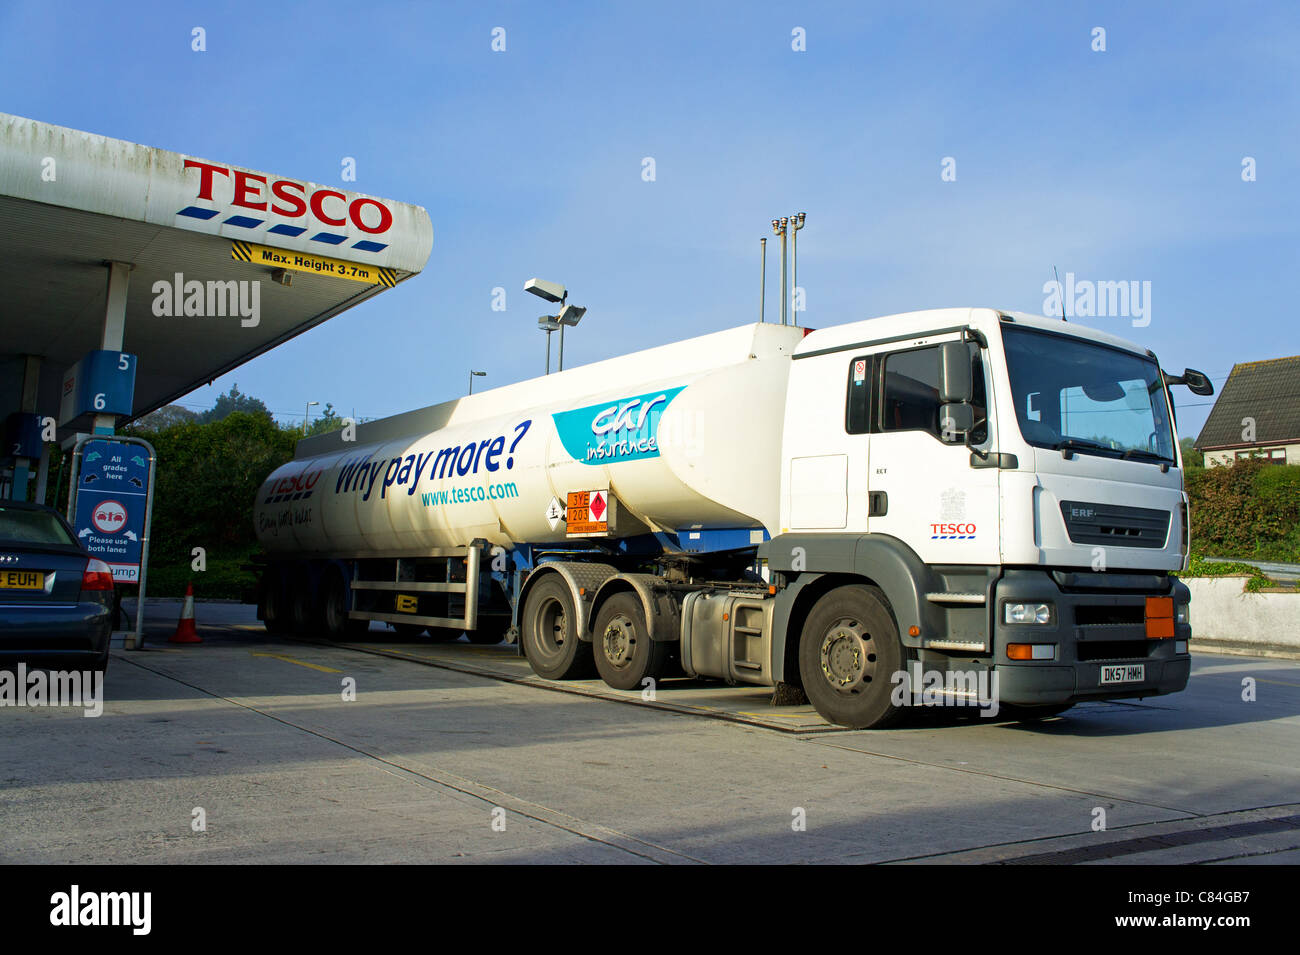 A petrol tanker on the forecourt of a Tesco filling station, uk - Stock Image